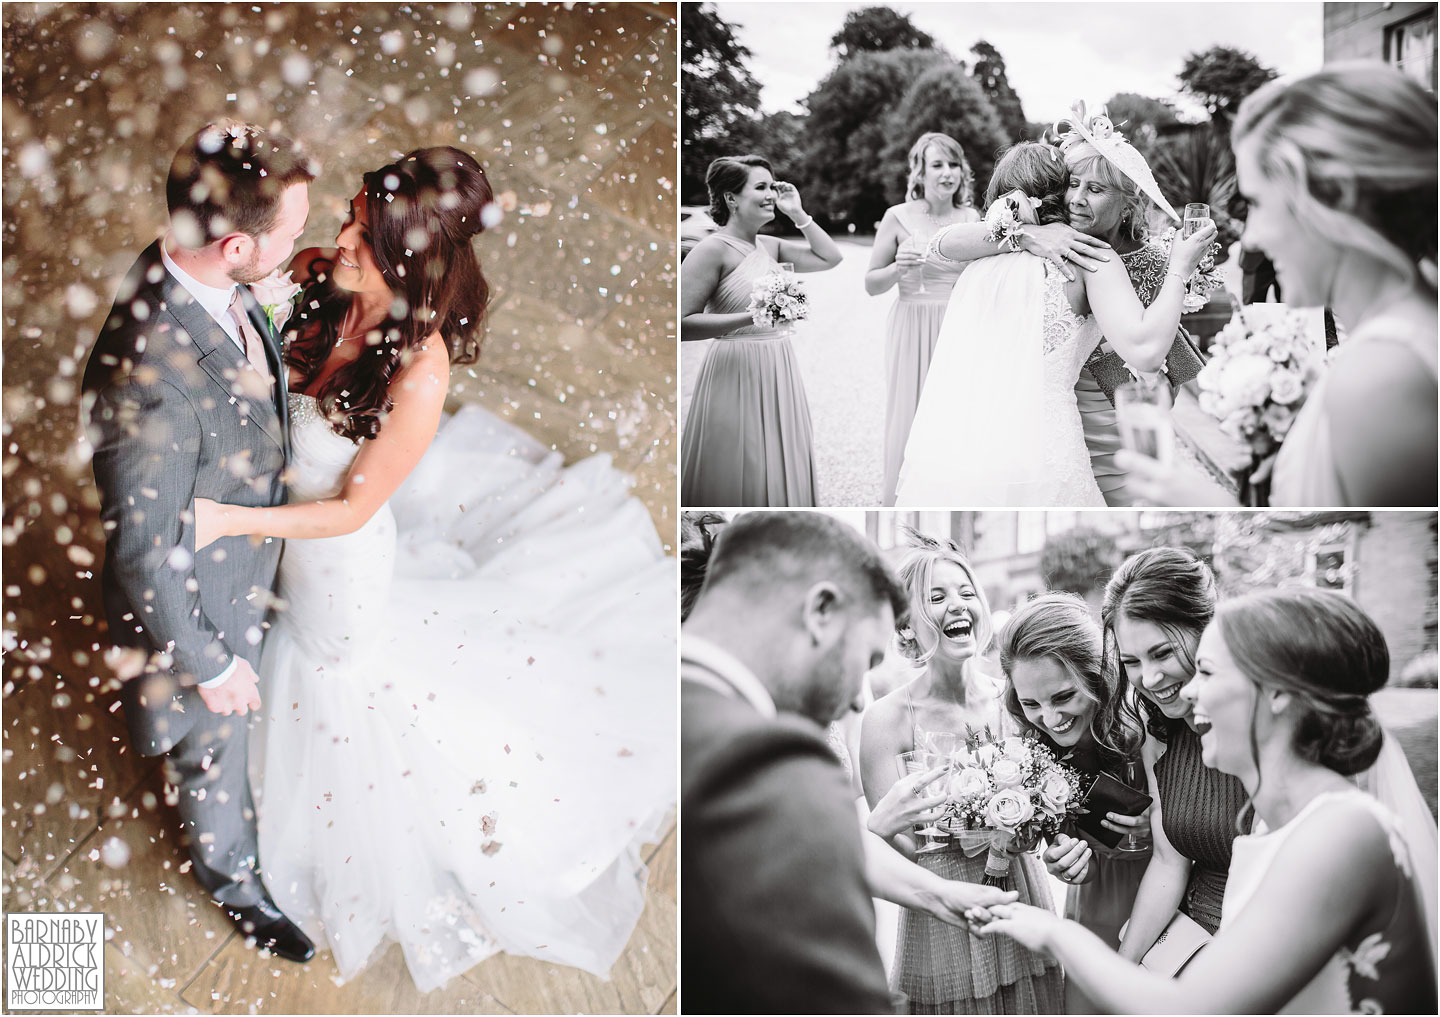 Wedding Confetti Photographs, Priory Cottages Yorkshire